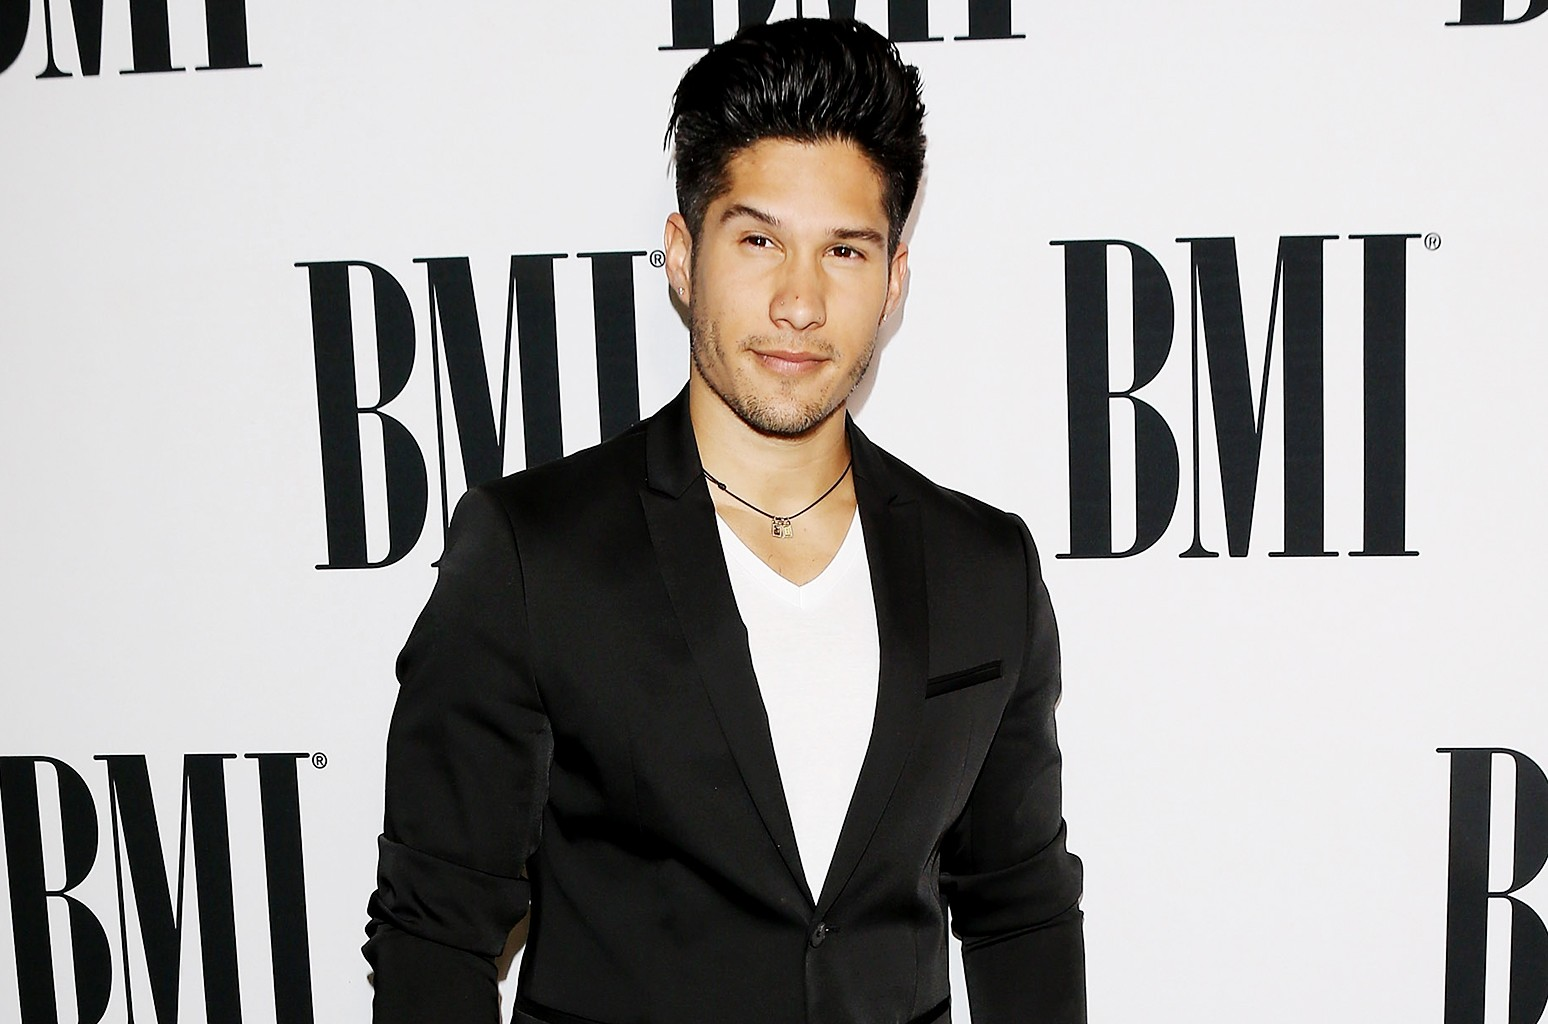 Jesus Alberto Miranda Perez of Chino y Nacho arrives at the 23rd Annual BMI Latin Awards held at the Beverly Wilshire Four Seasons Hotel on March 2, 2016 in Beverly Hills, Calif.